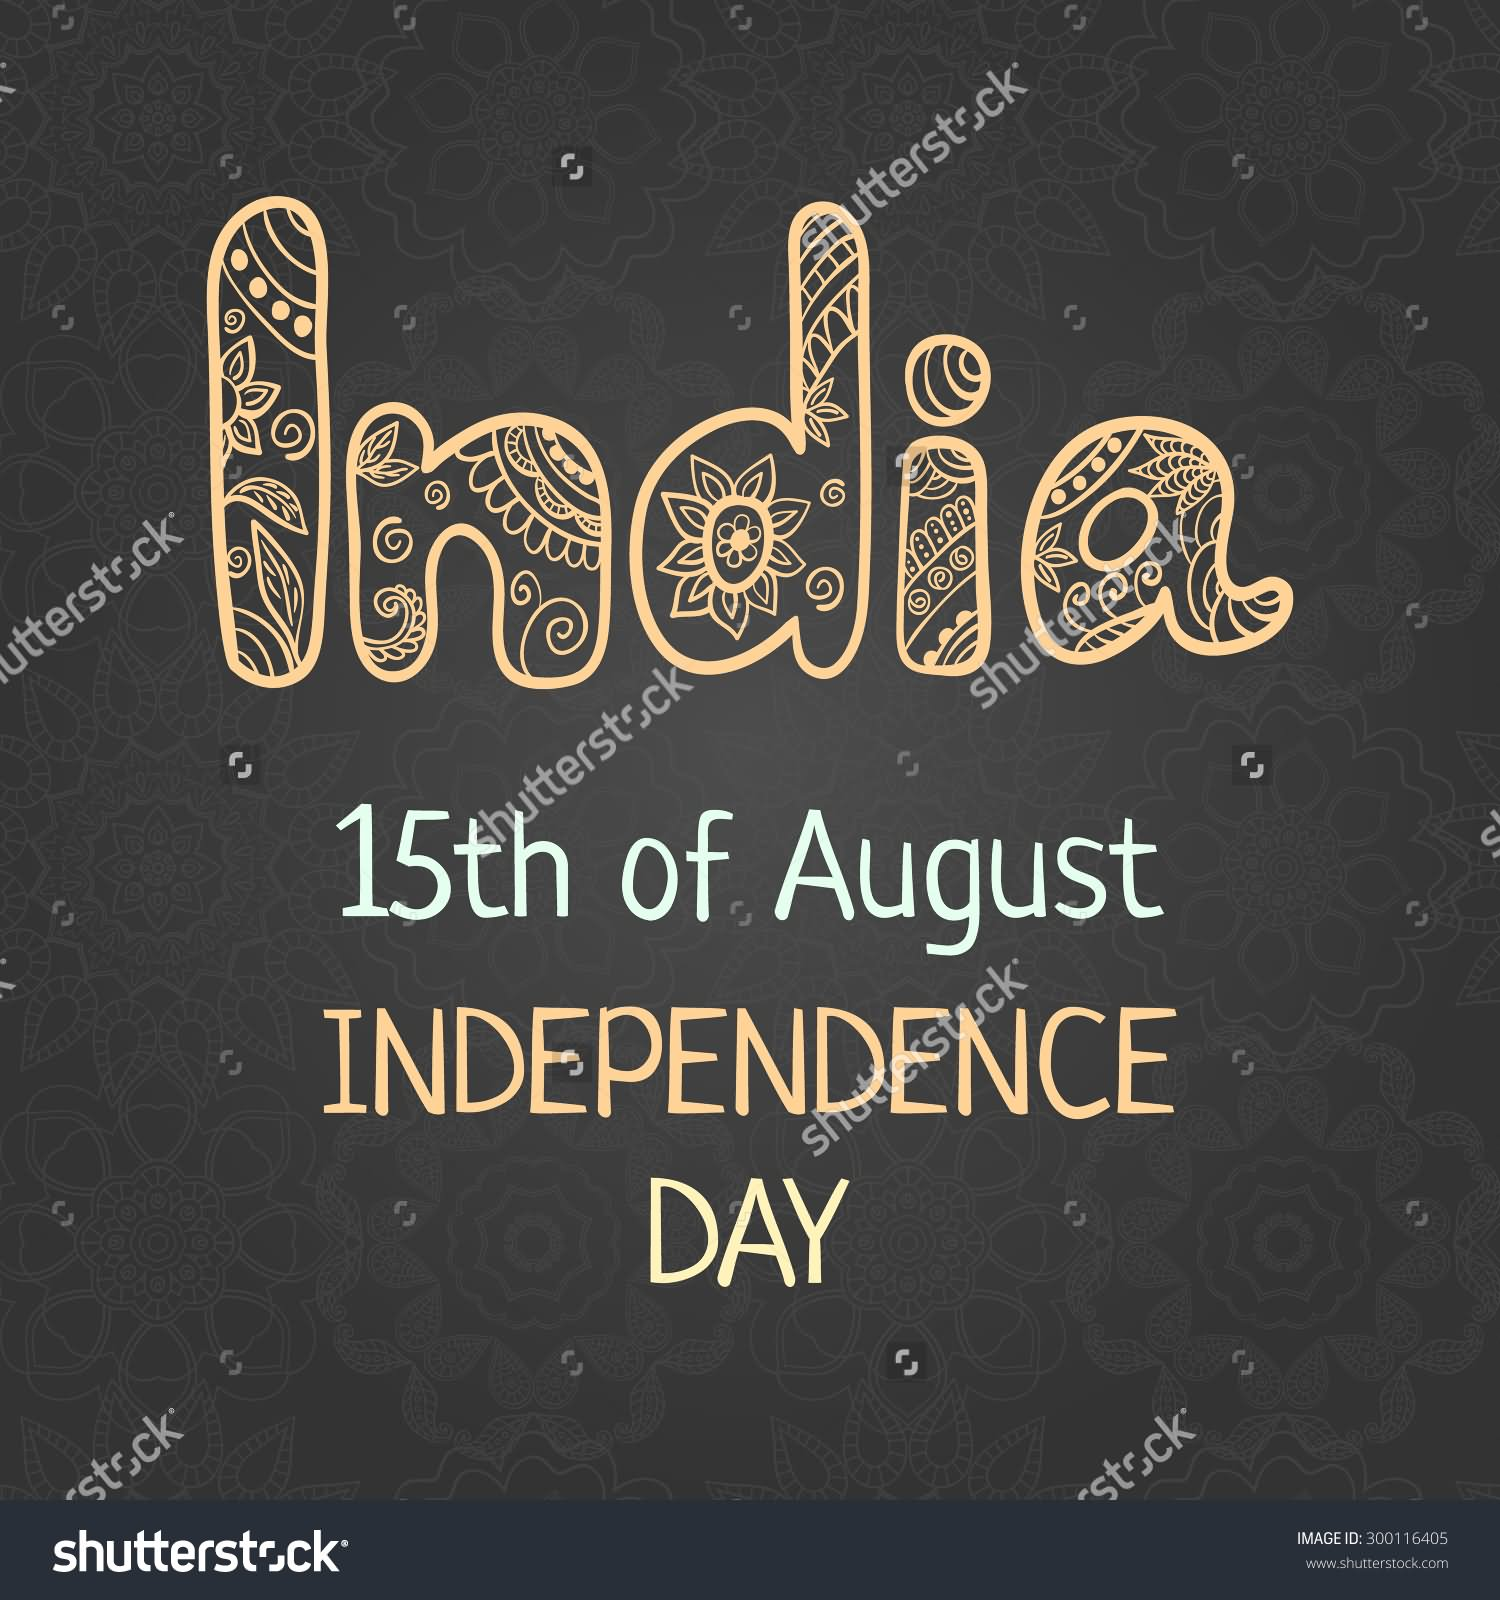 35 most beautiful happy independence day 2016 greeting card pictures india 15th of august independence day greeting card kristyandbryce Images